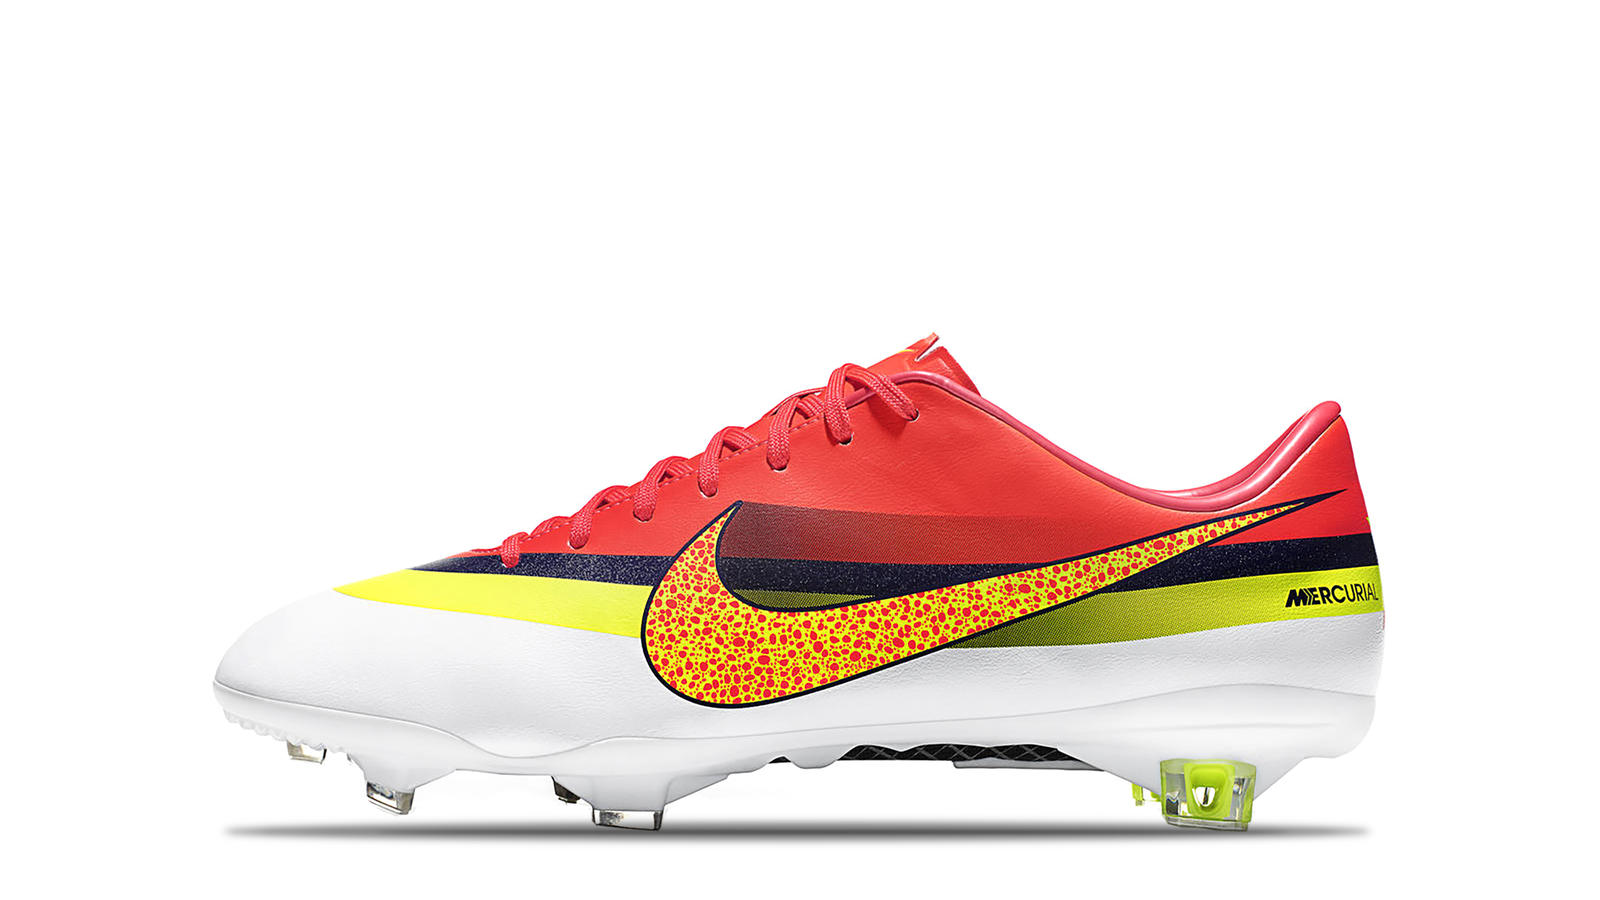 2013 Mercurial Vapor IX CR7 White Volt Total Crimson